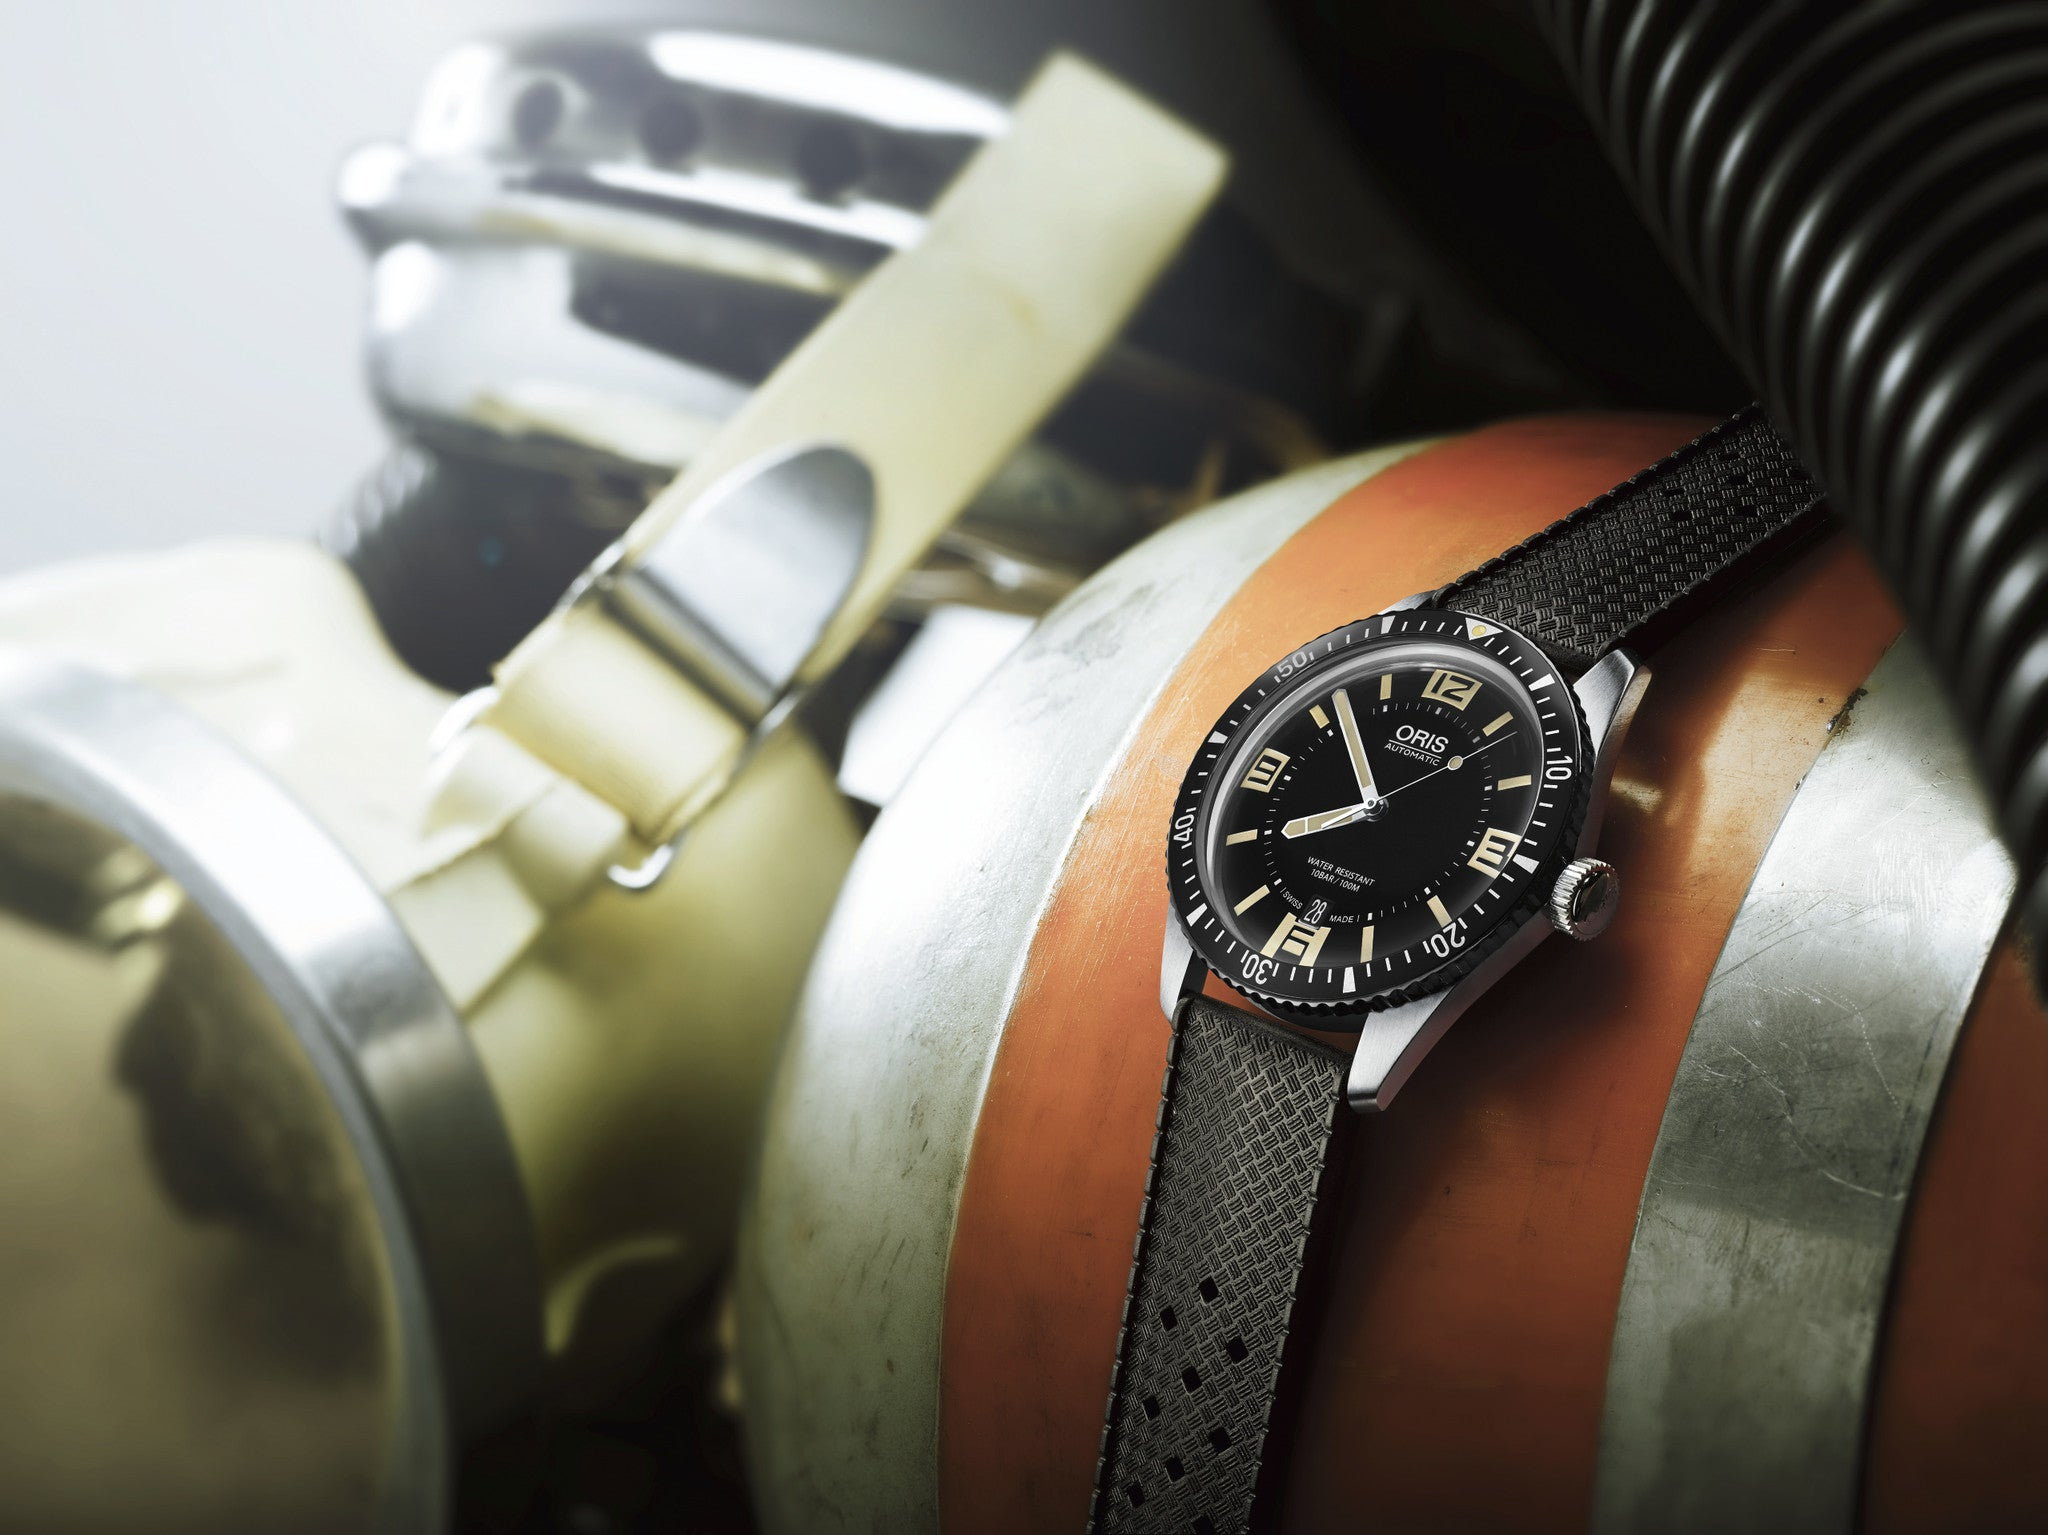 Retro Vibe Delivered: The Oris Sixy-Five 65 Diver Watch